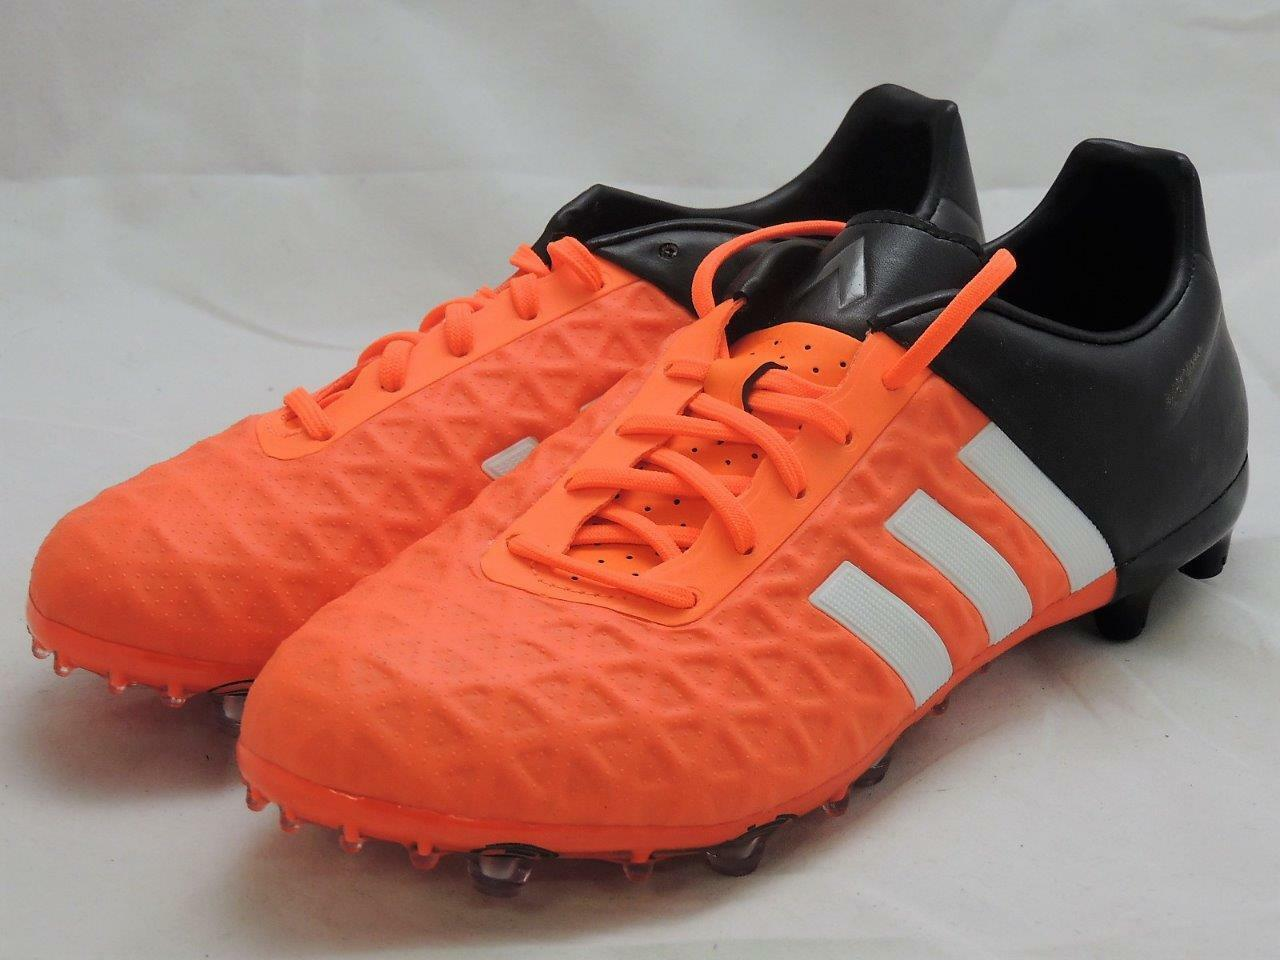 ADIDAS Ace  FG/AG Soccer Cleats Orange/Black S83254 Size 8